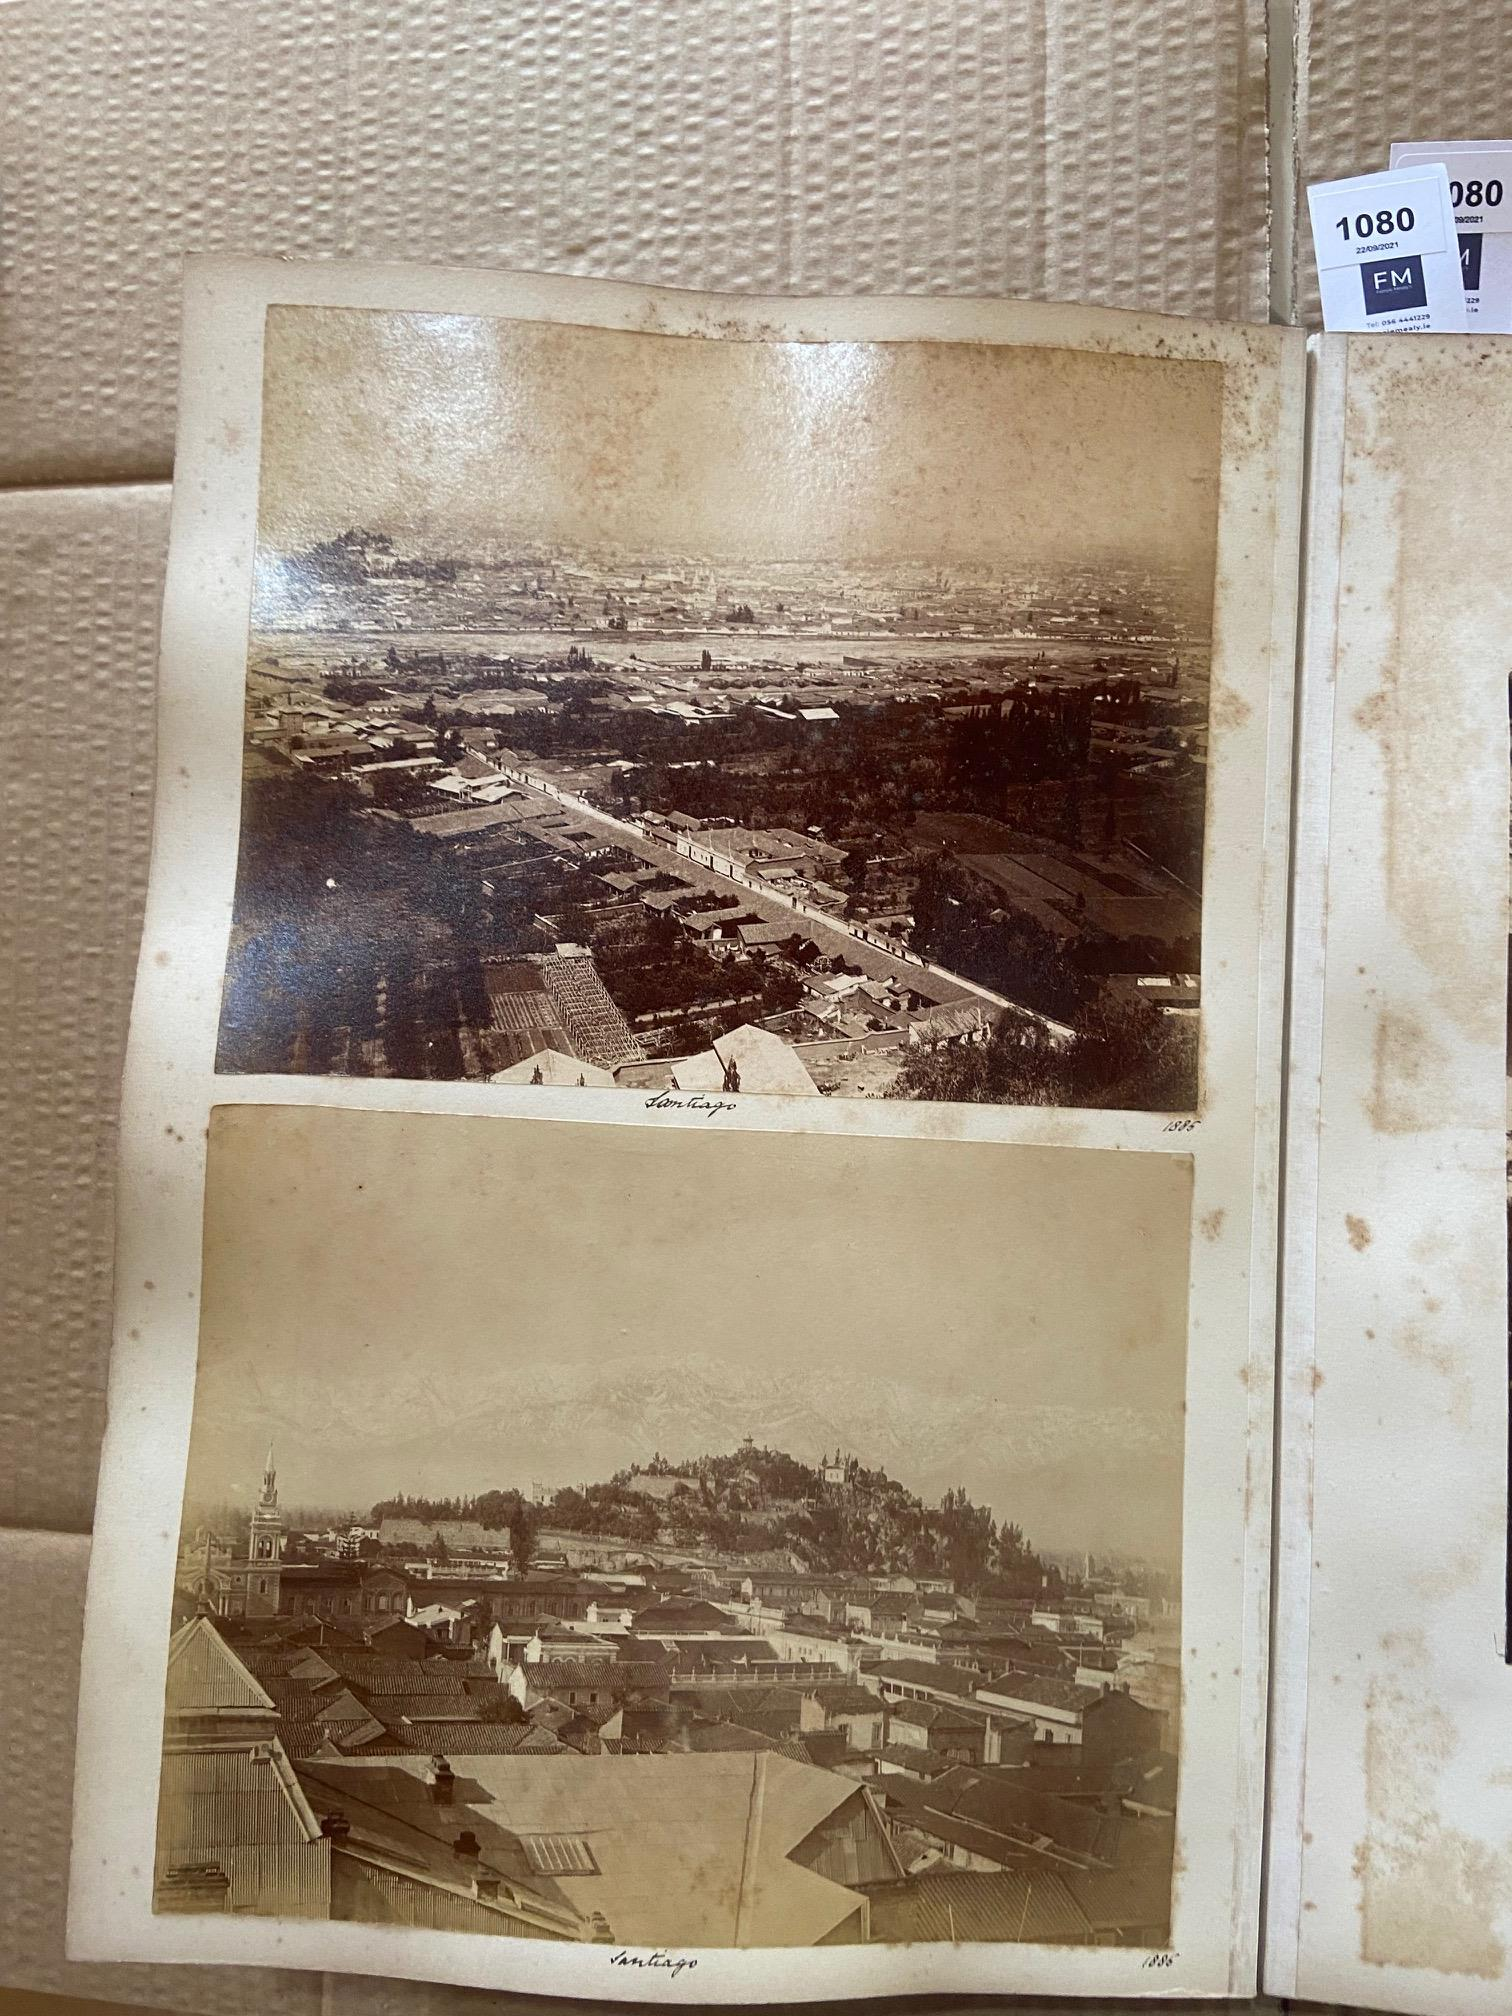 Photographs: Two large folio Albums of Photographs, each c. 1870 - 1890's. One Album contains - Image 22 of 31